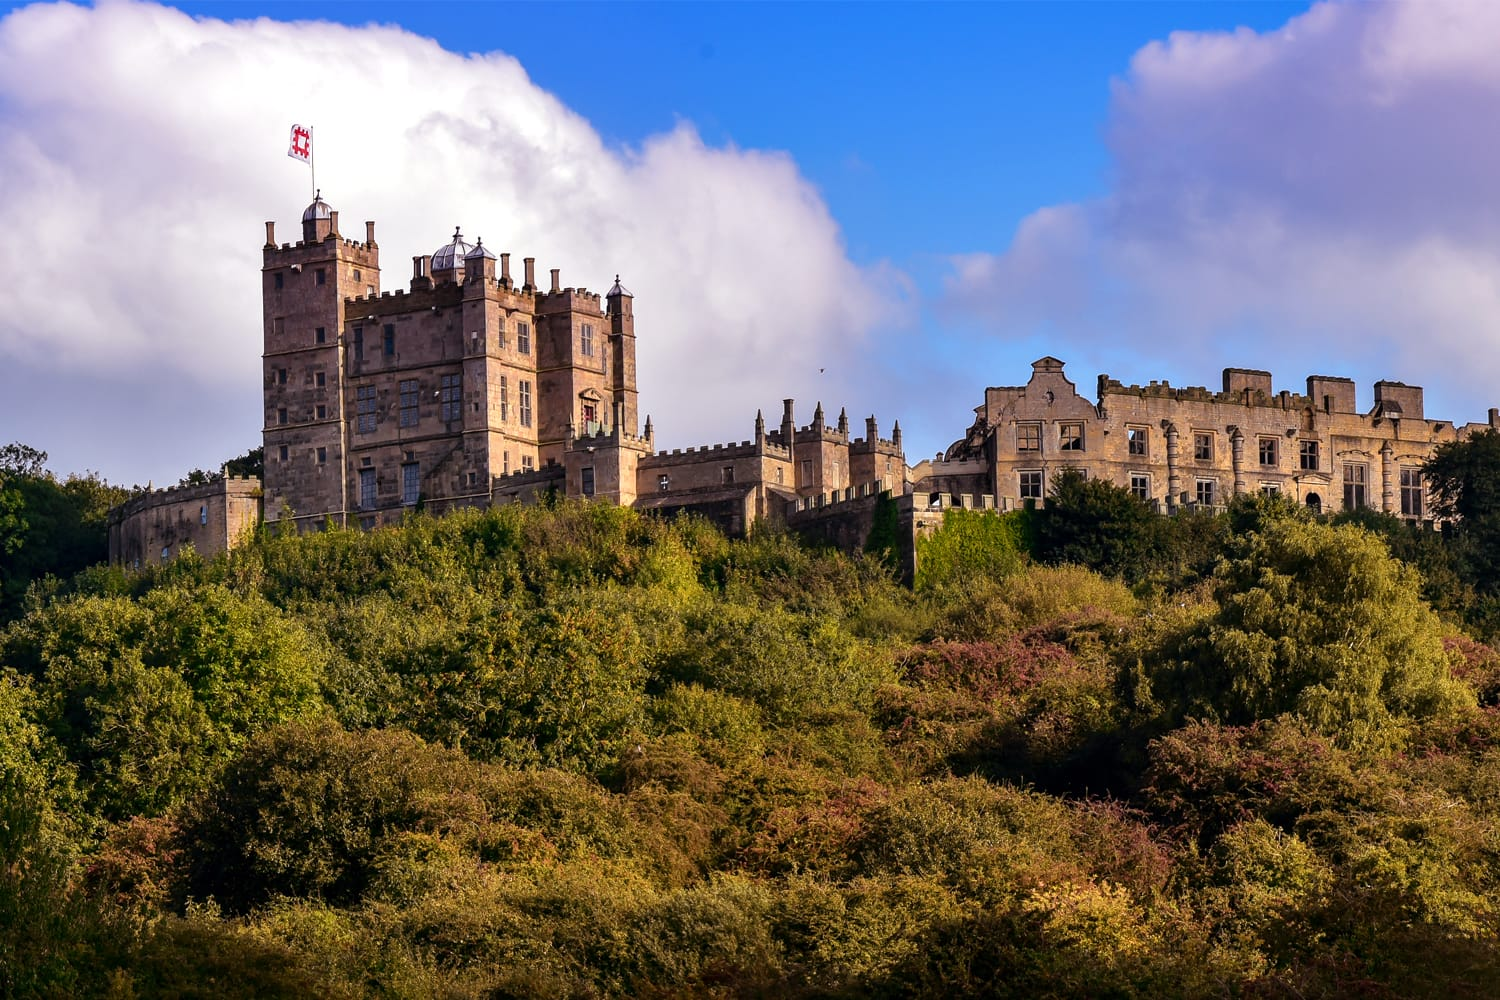 Panorama of Bolsover Castle in Derbyshire England